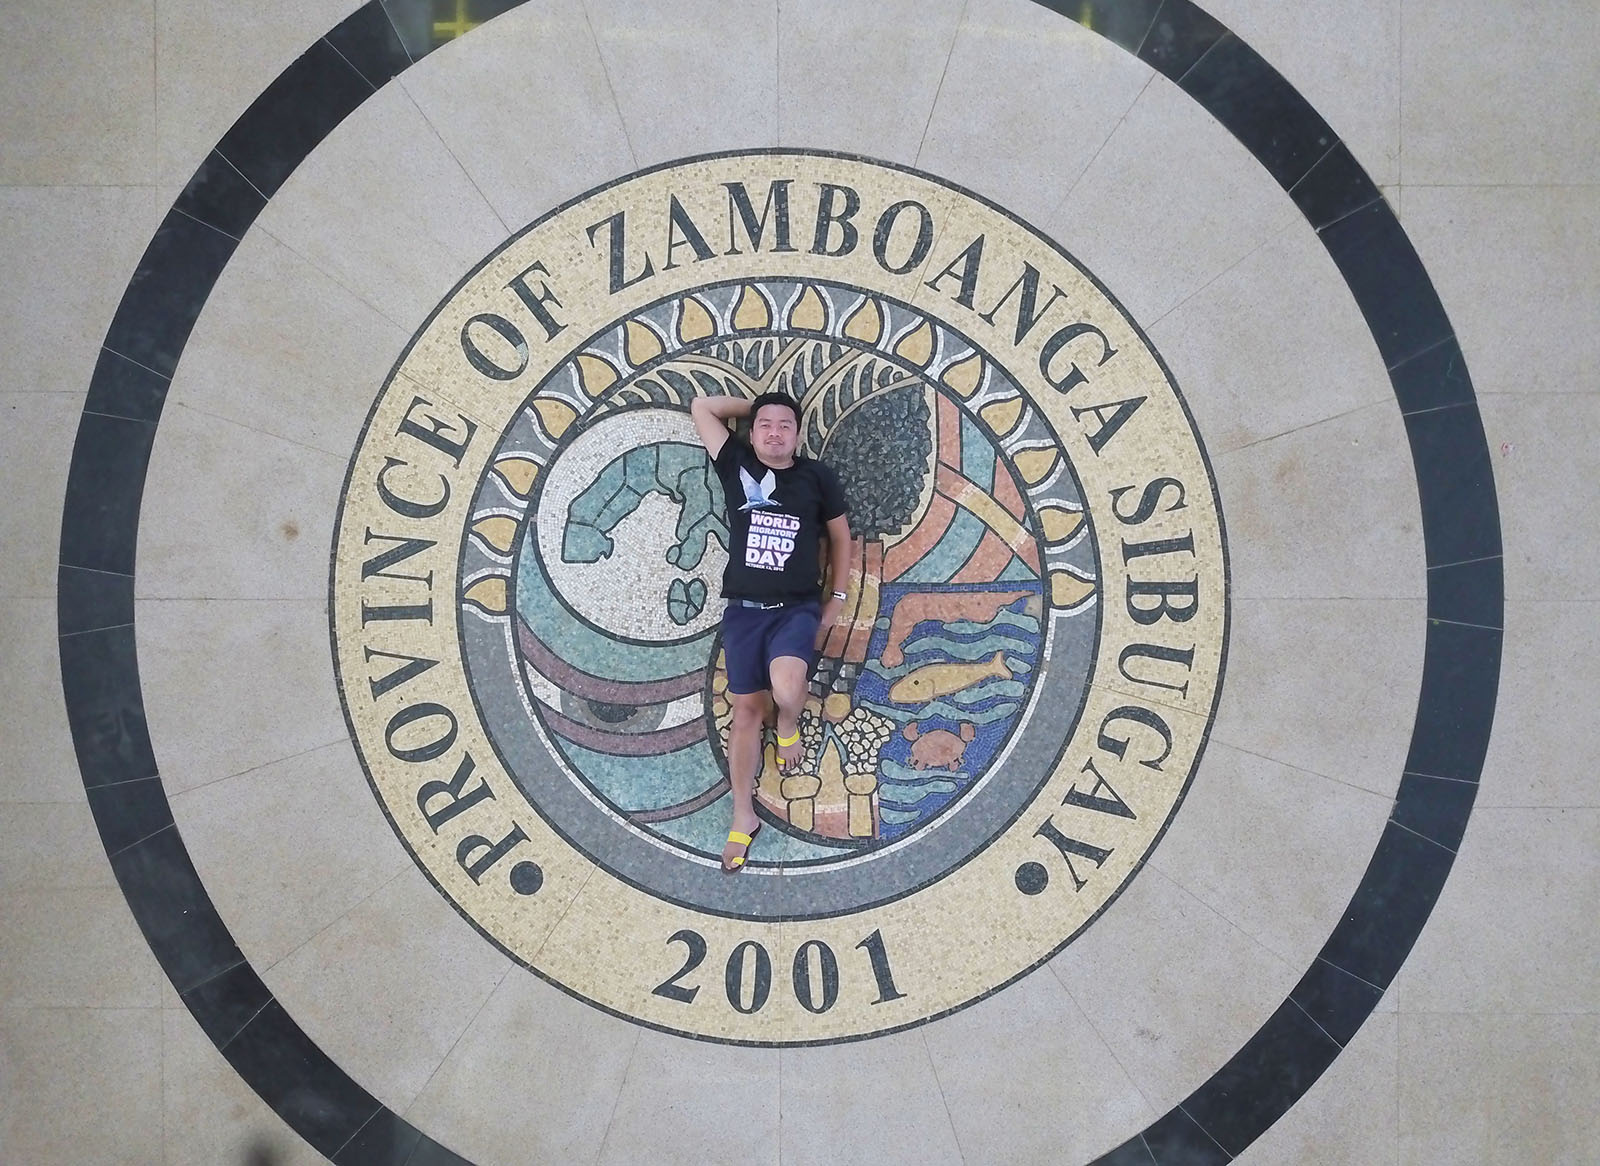 Top Tourist Spots in Zamboanga Sibugay [And How To Get There]